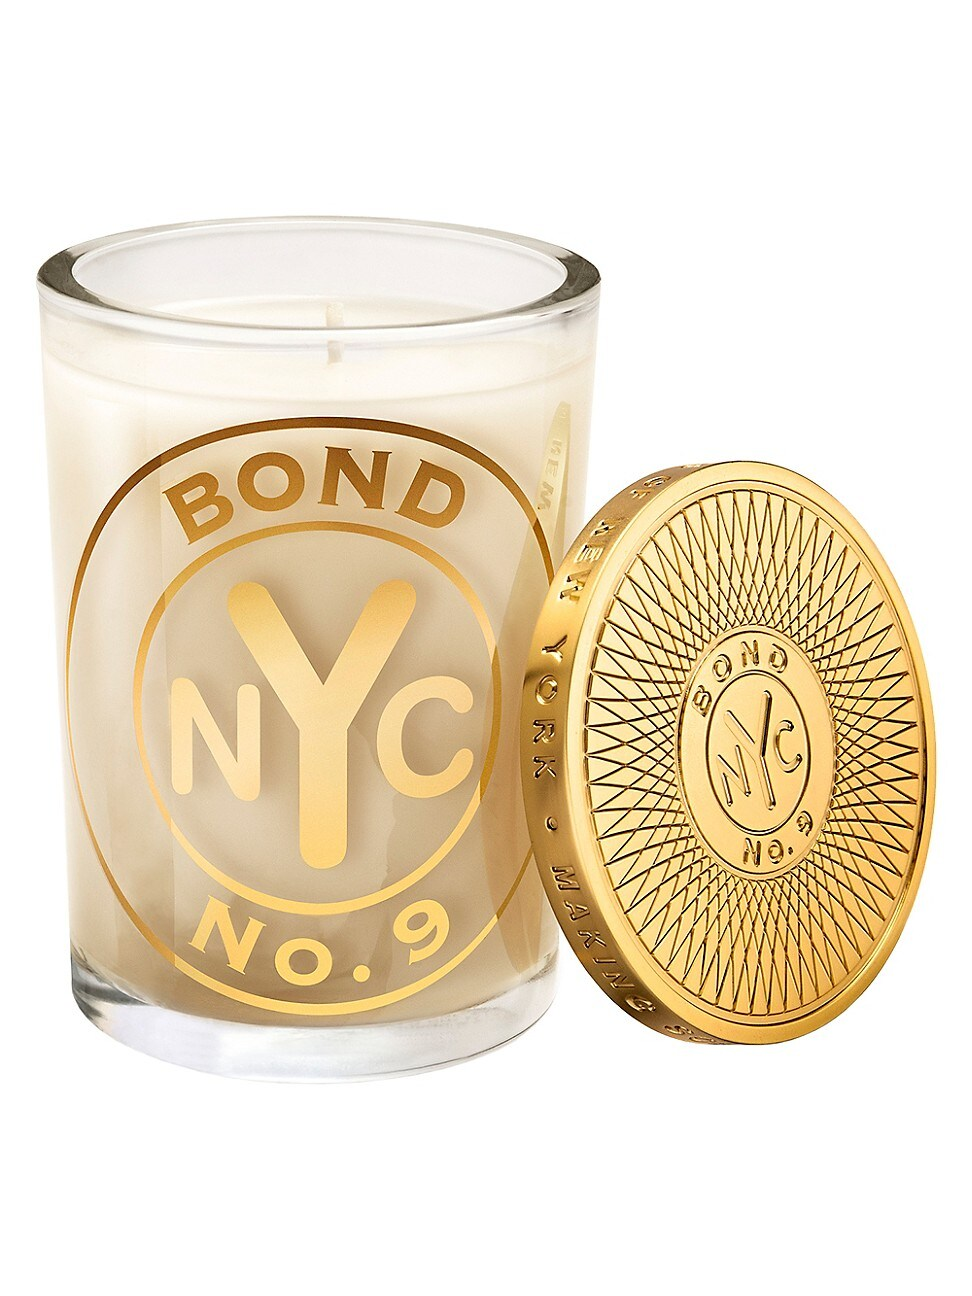 Bond No. 9 New York Perfume Scented Candle